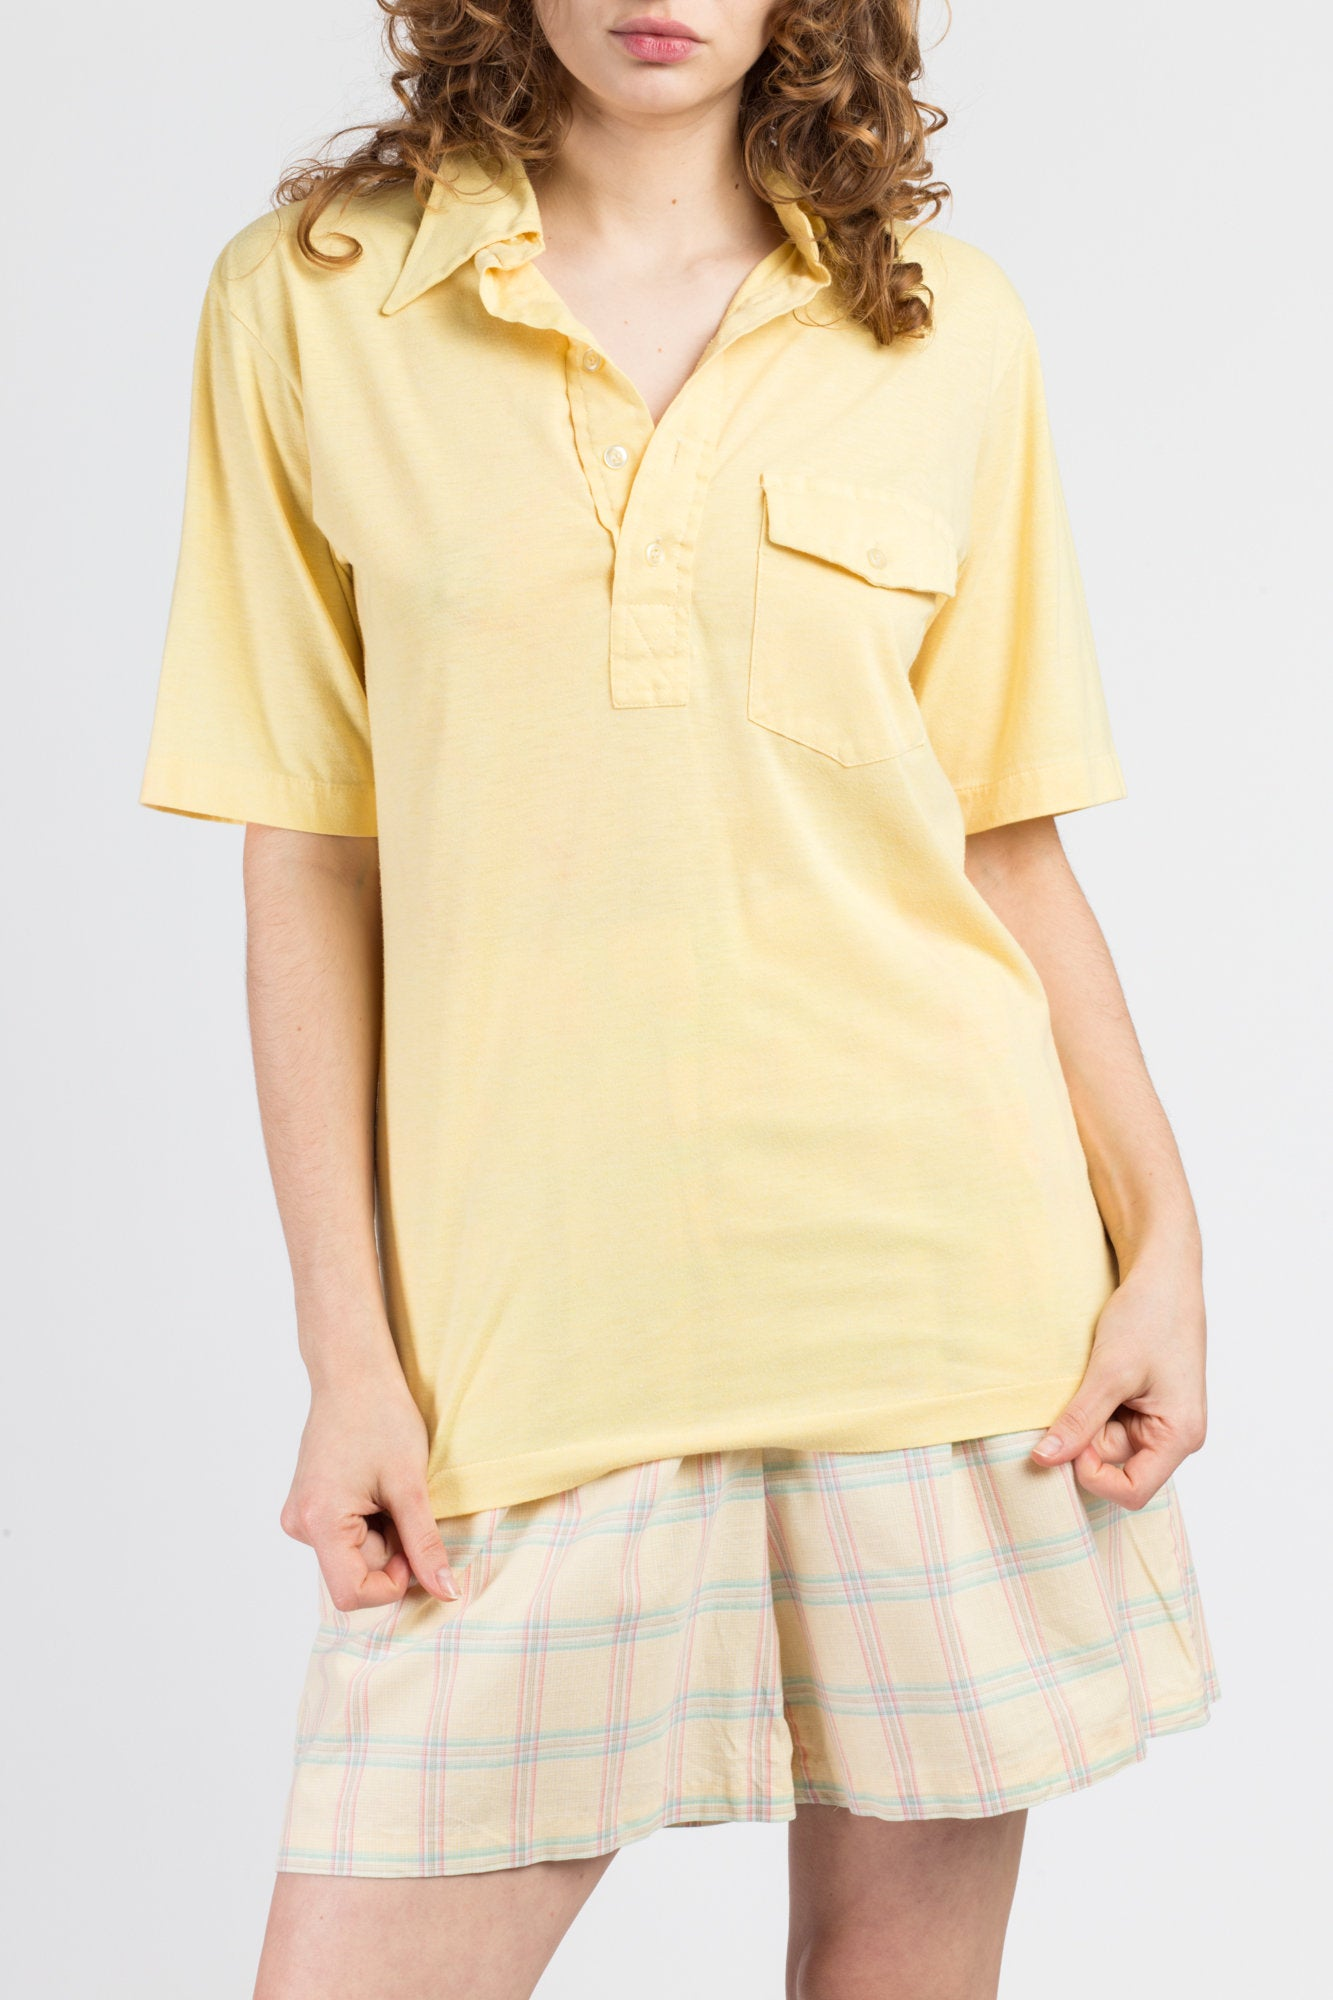 80s Yellow Polo Shirt - Men's Medium